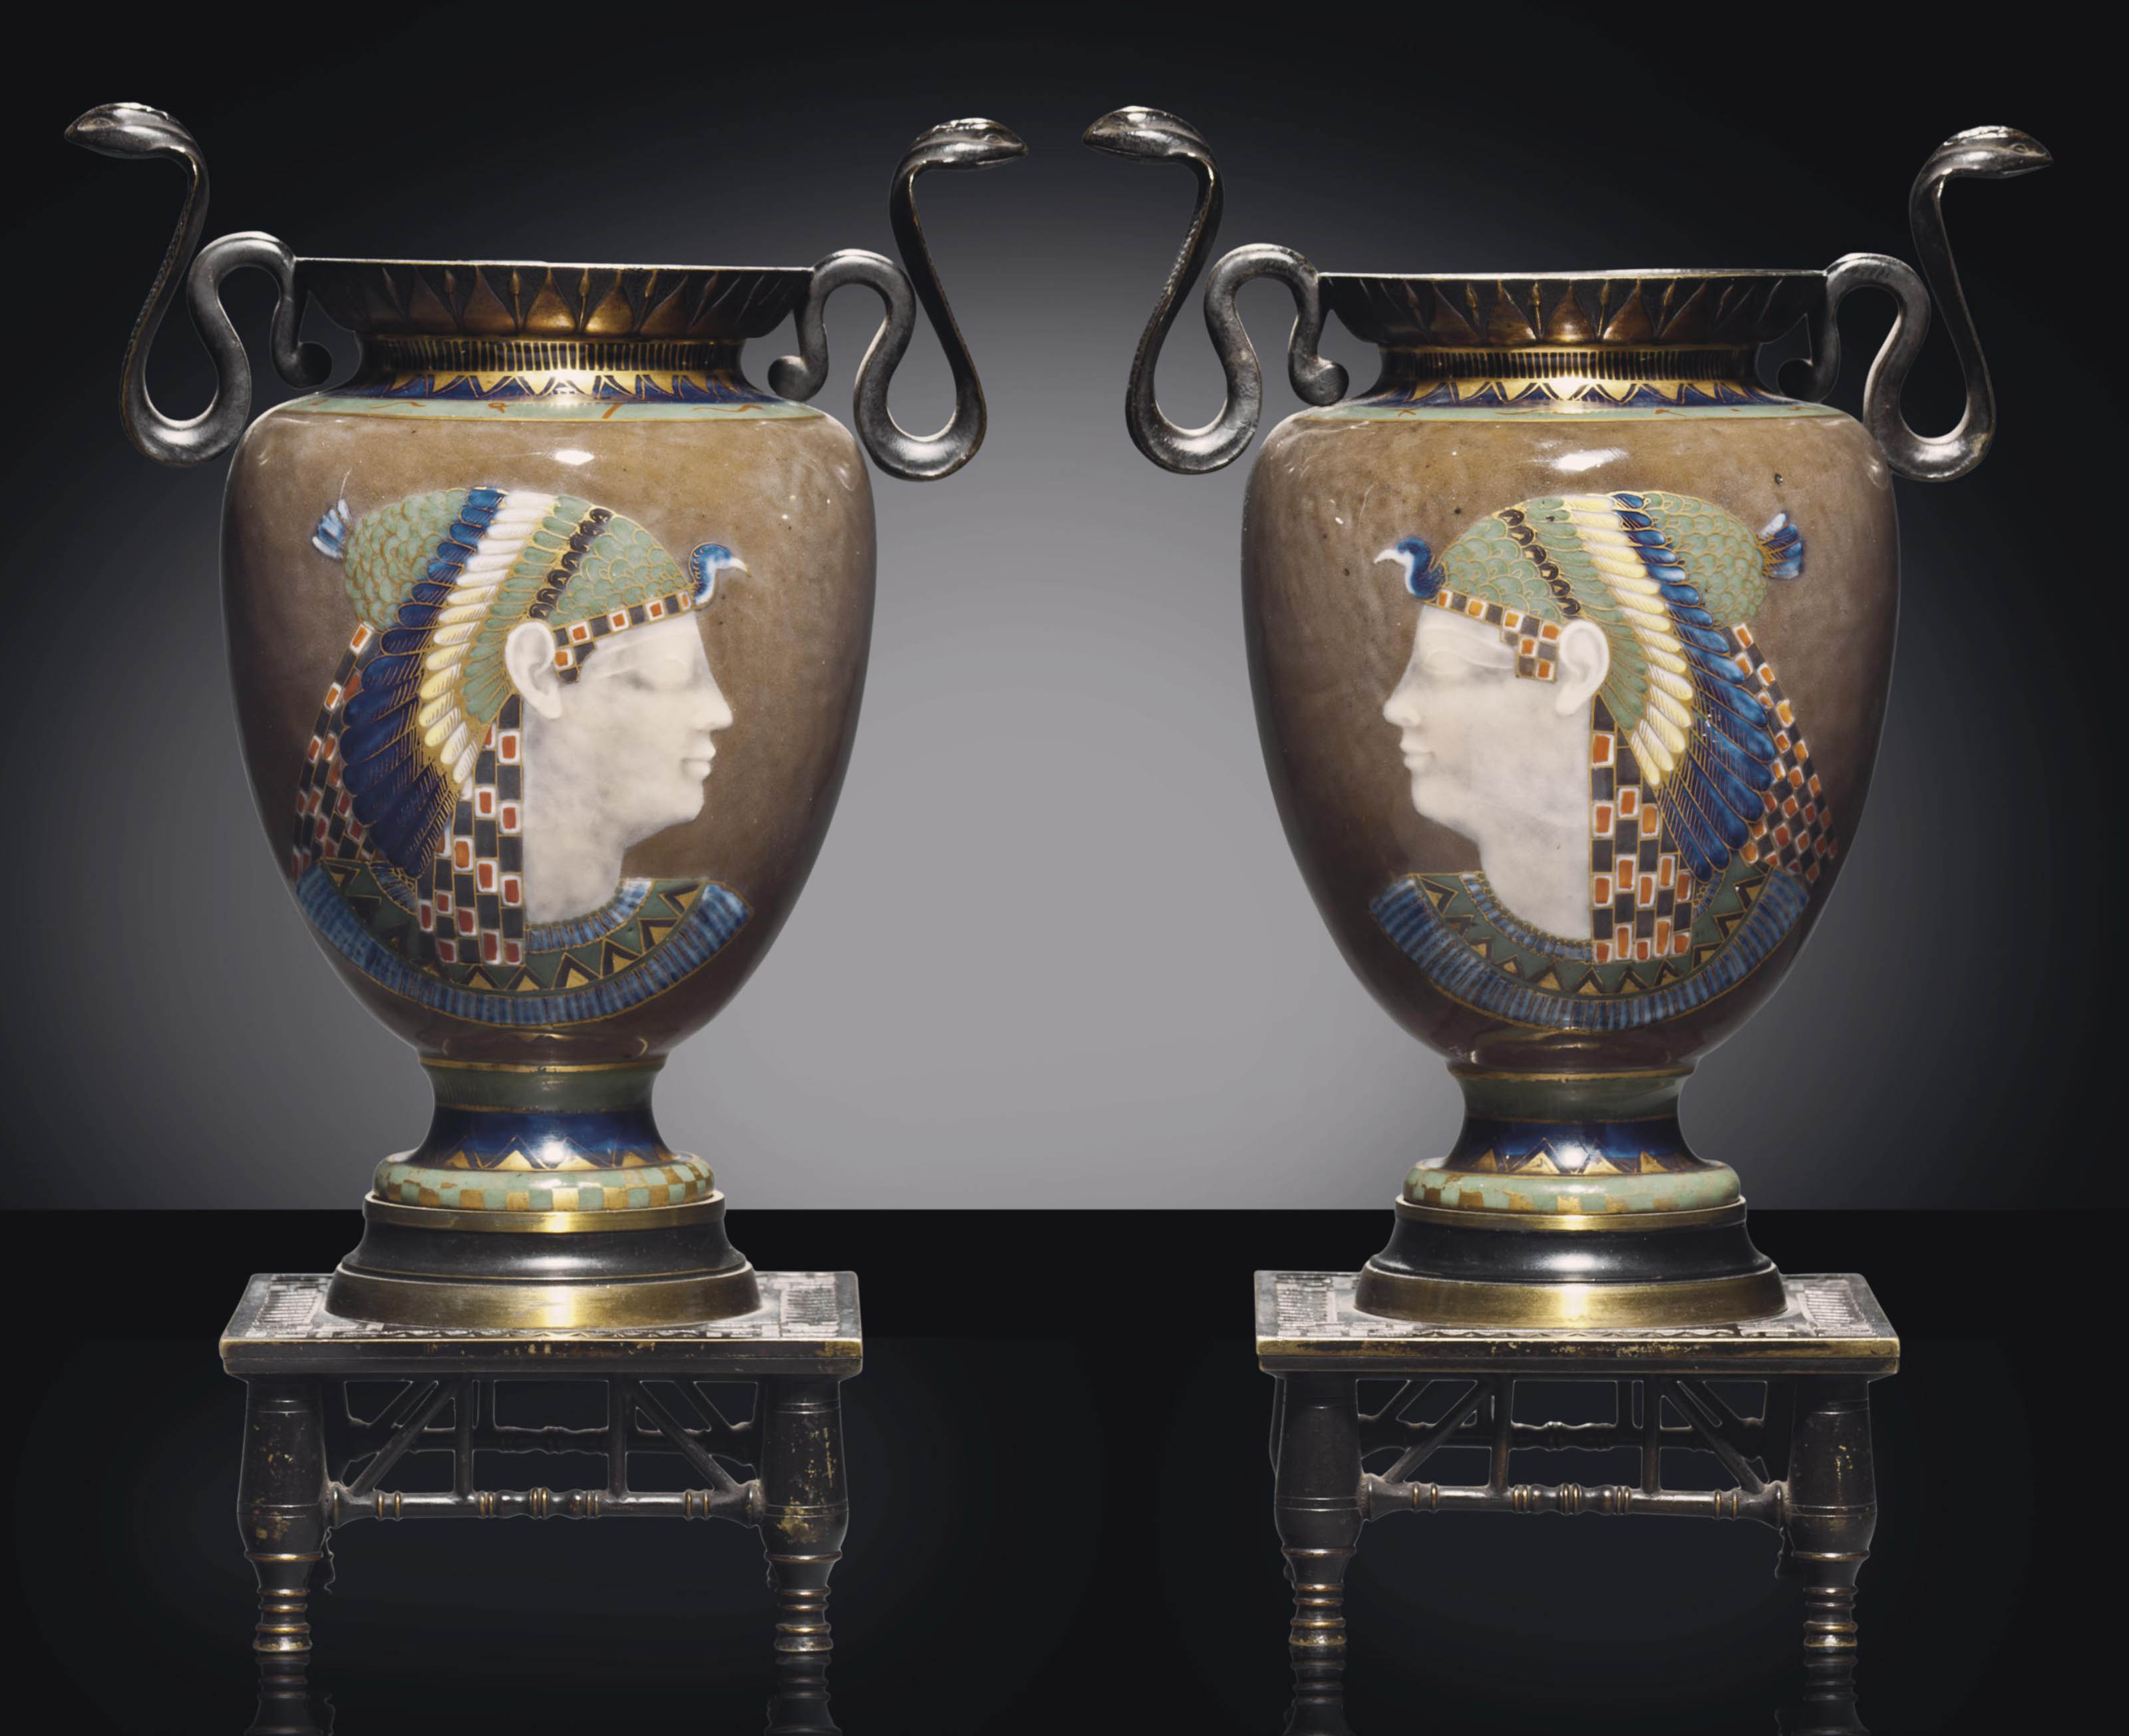 A PAIR OF PATINATED-BRONZE MOUNTED FRENCH PORCELAIN PATE D'APPLICATION EGYPTIAN REVIVAL SMOKEY-BROWN GROUND VASES